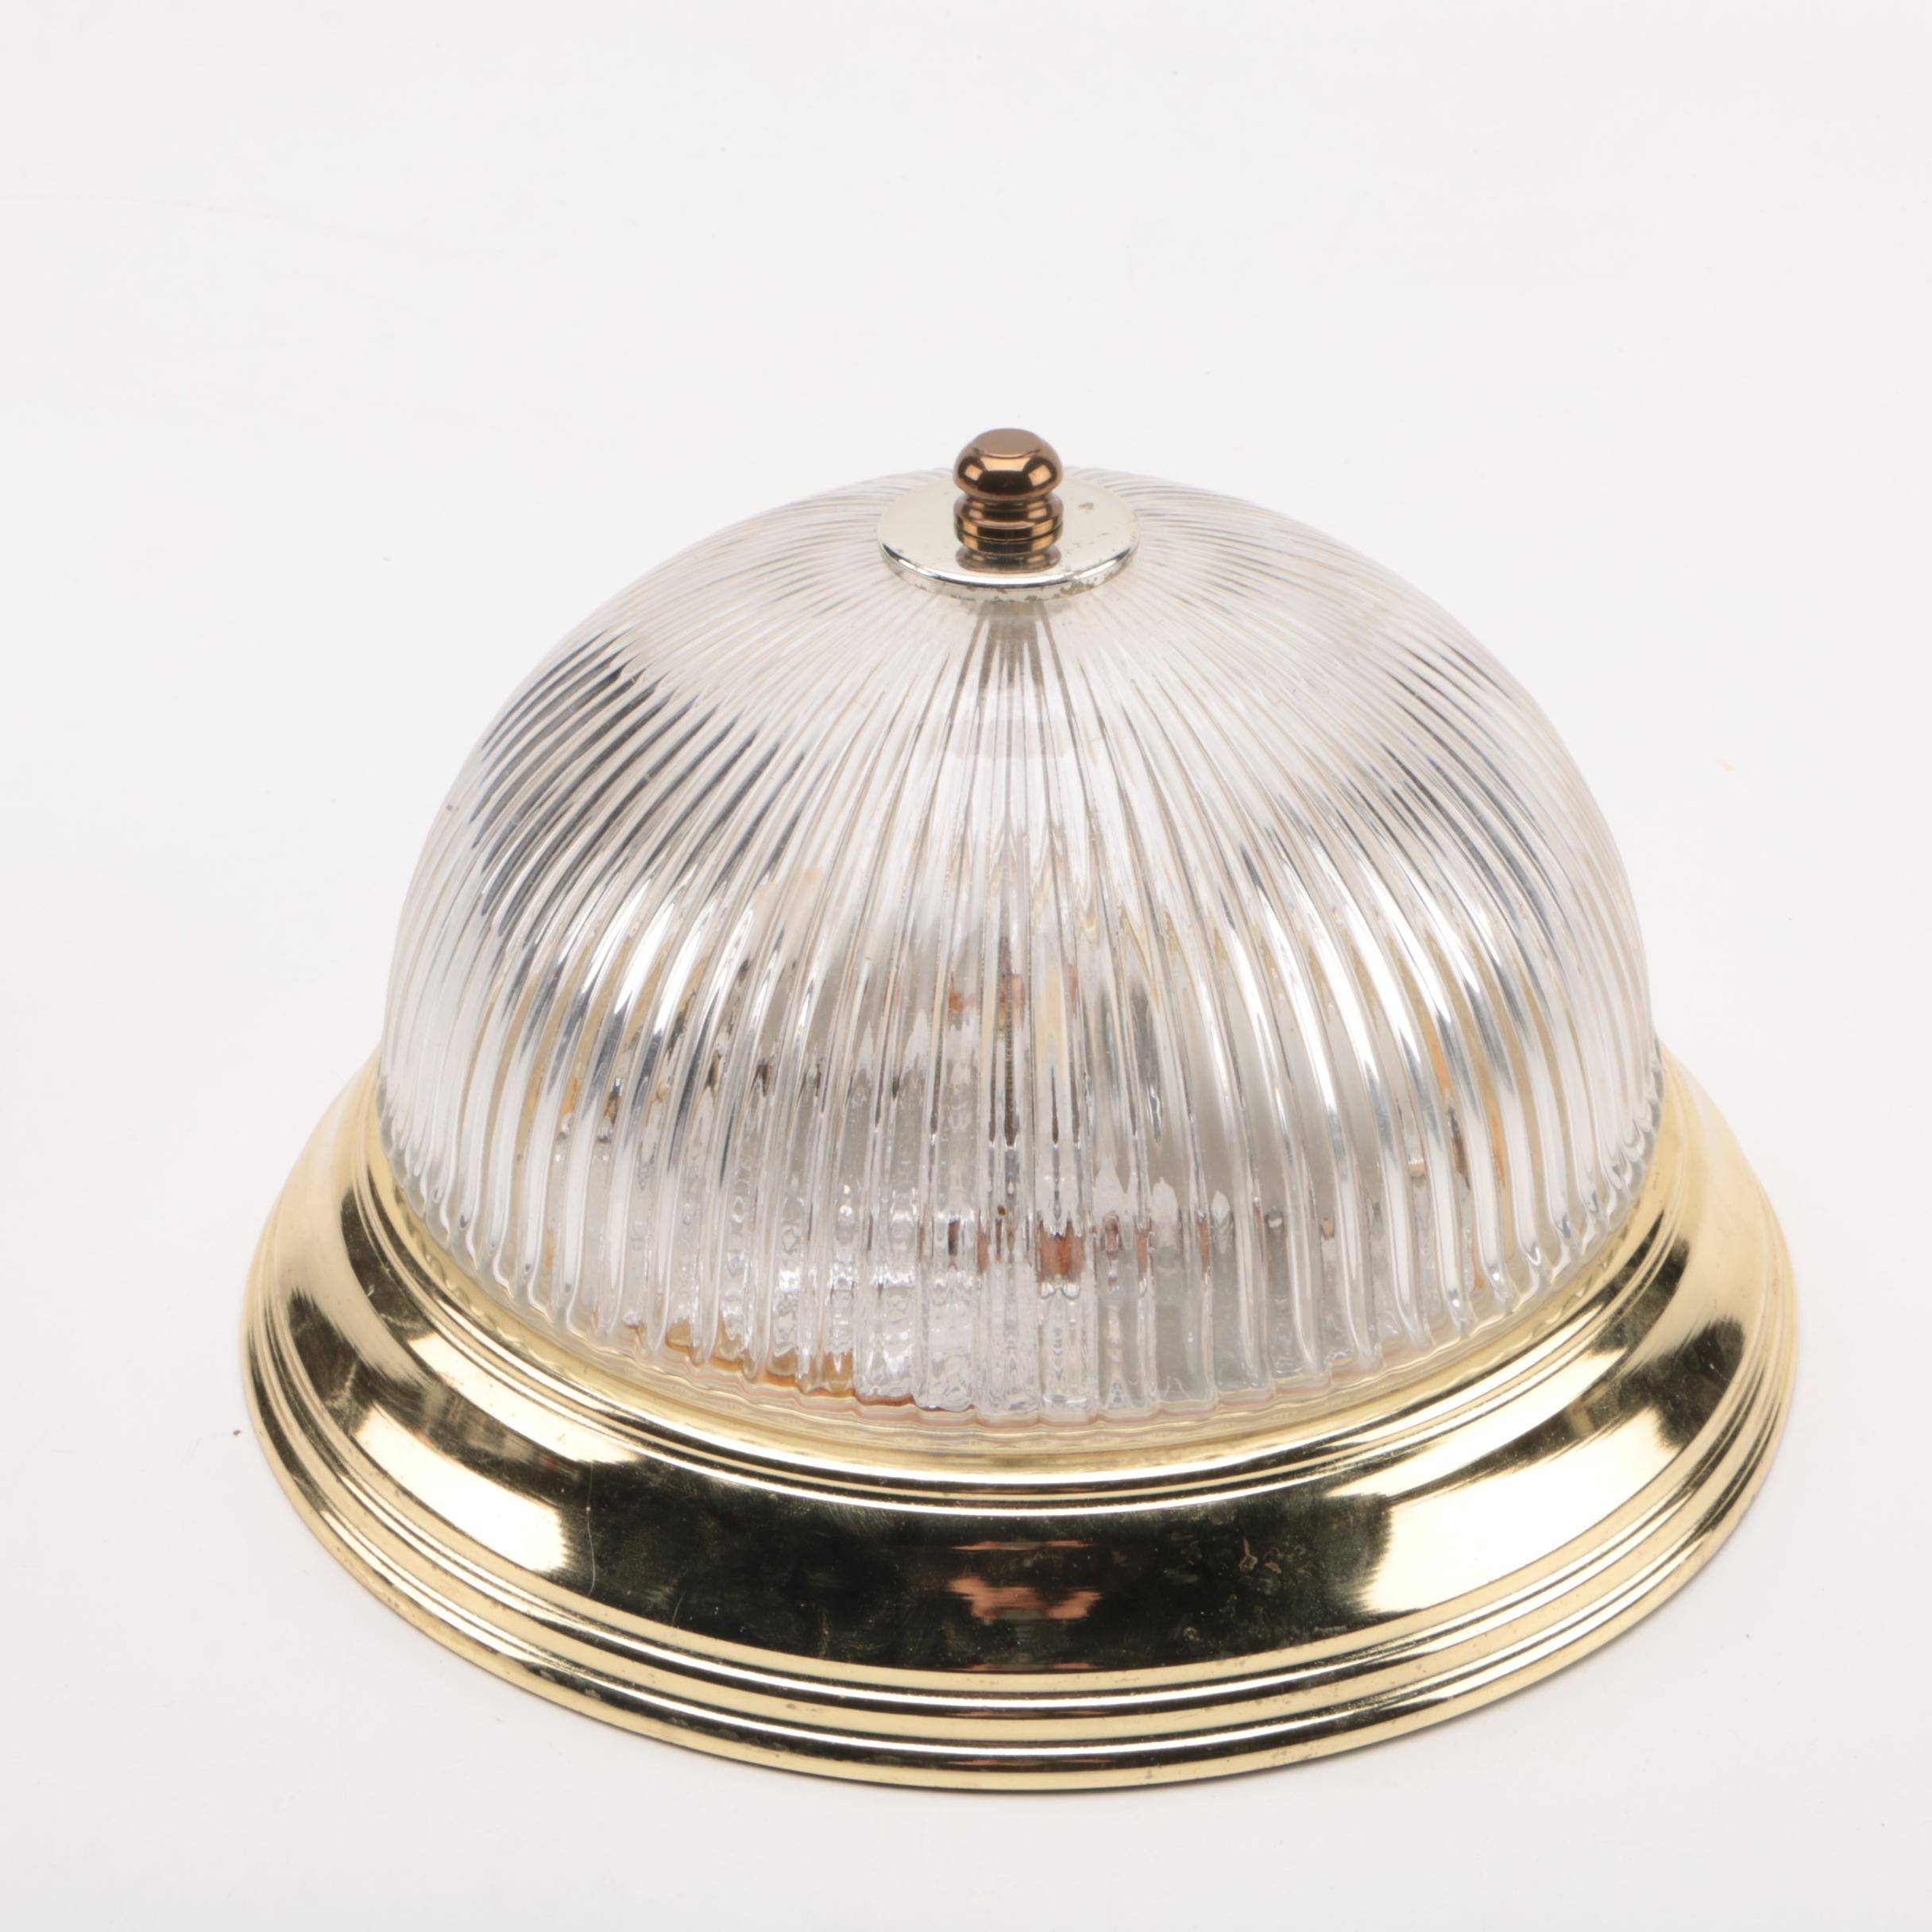 Glass Dome Ceiling Light Fixture